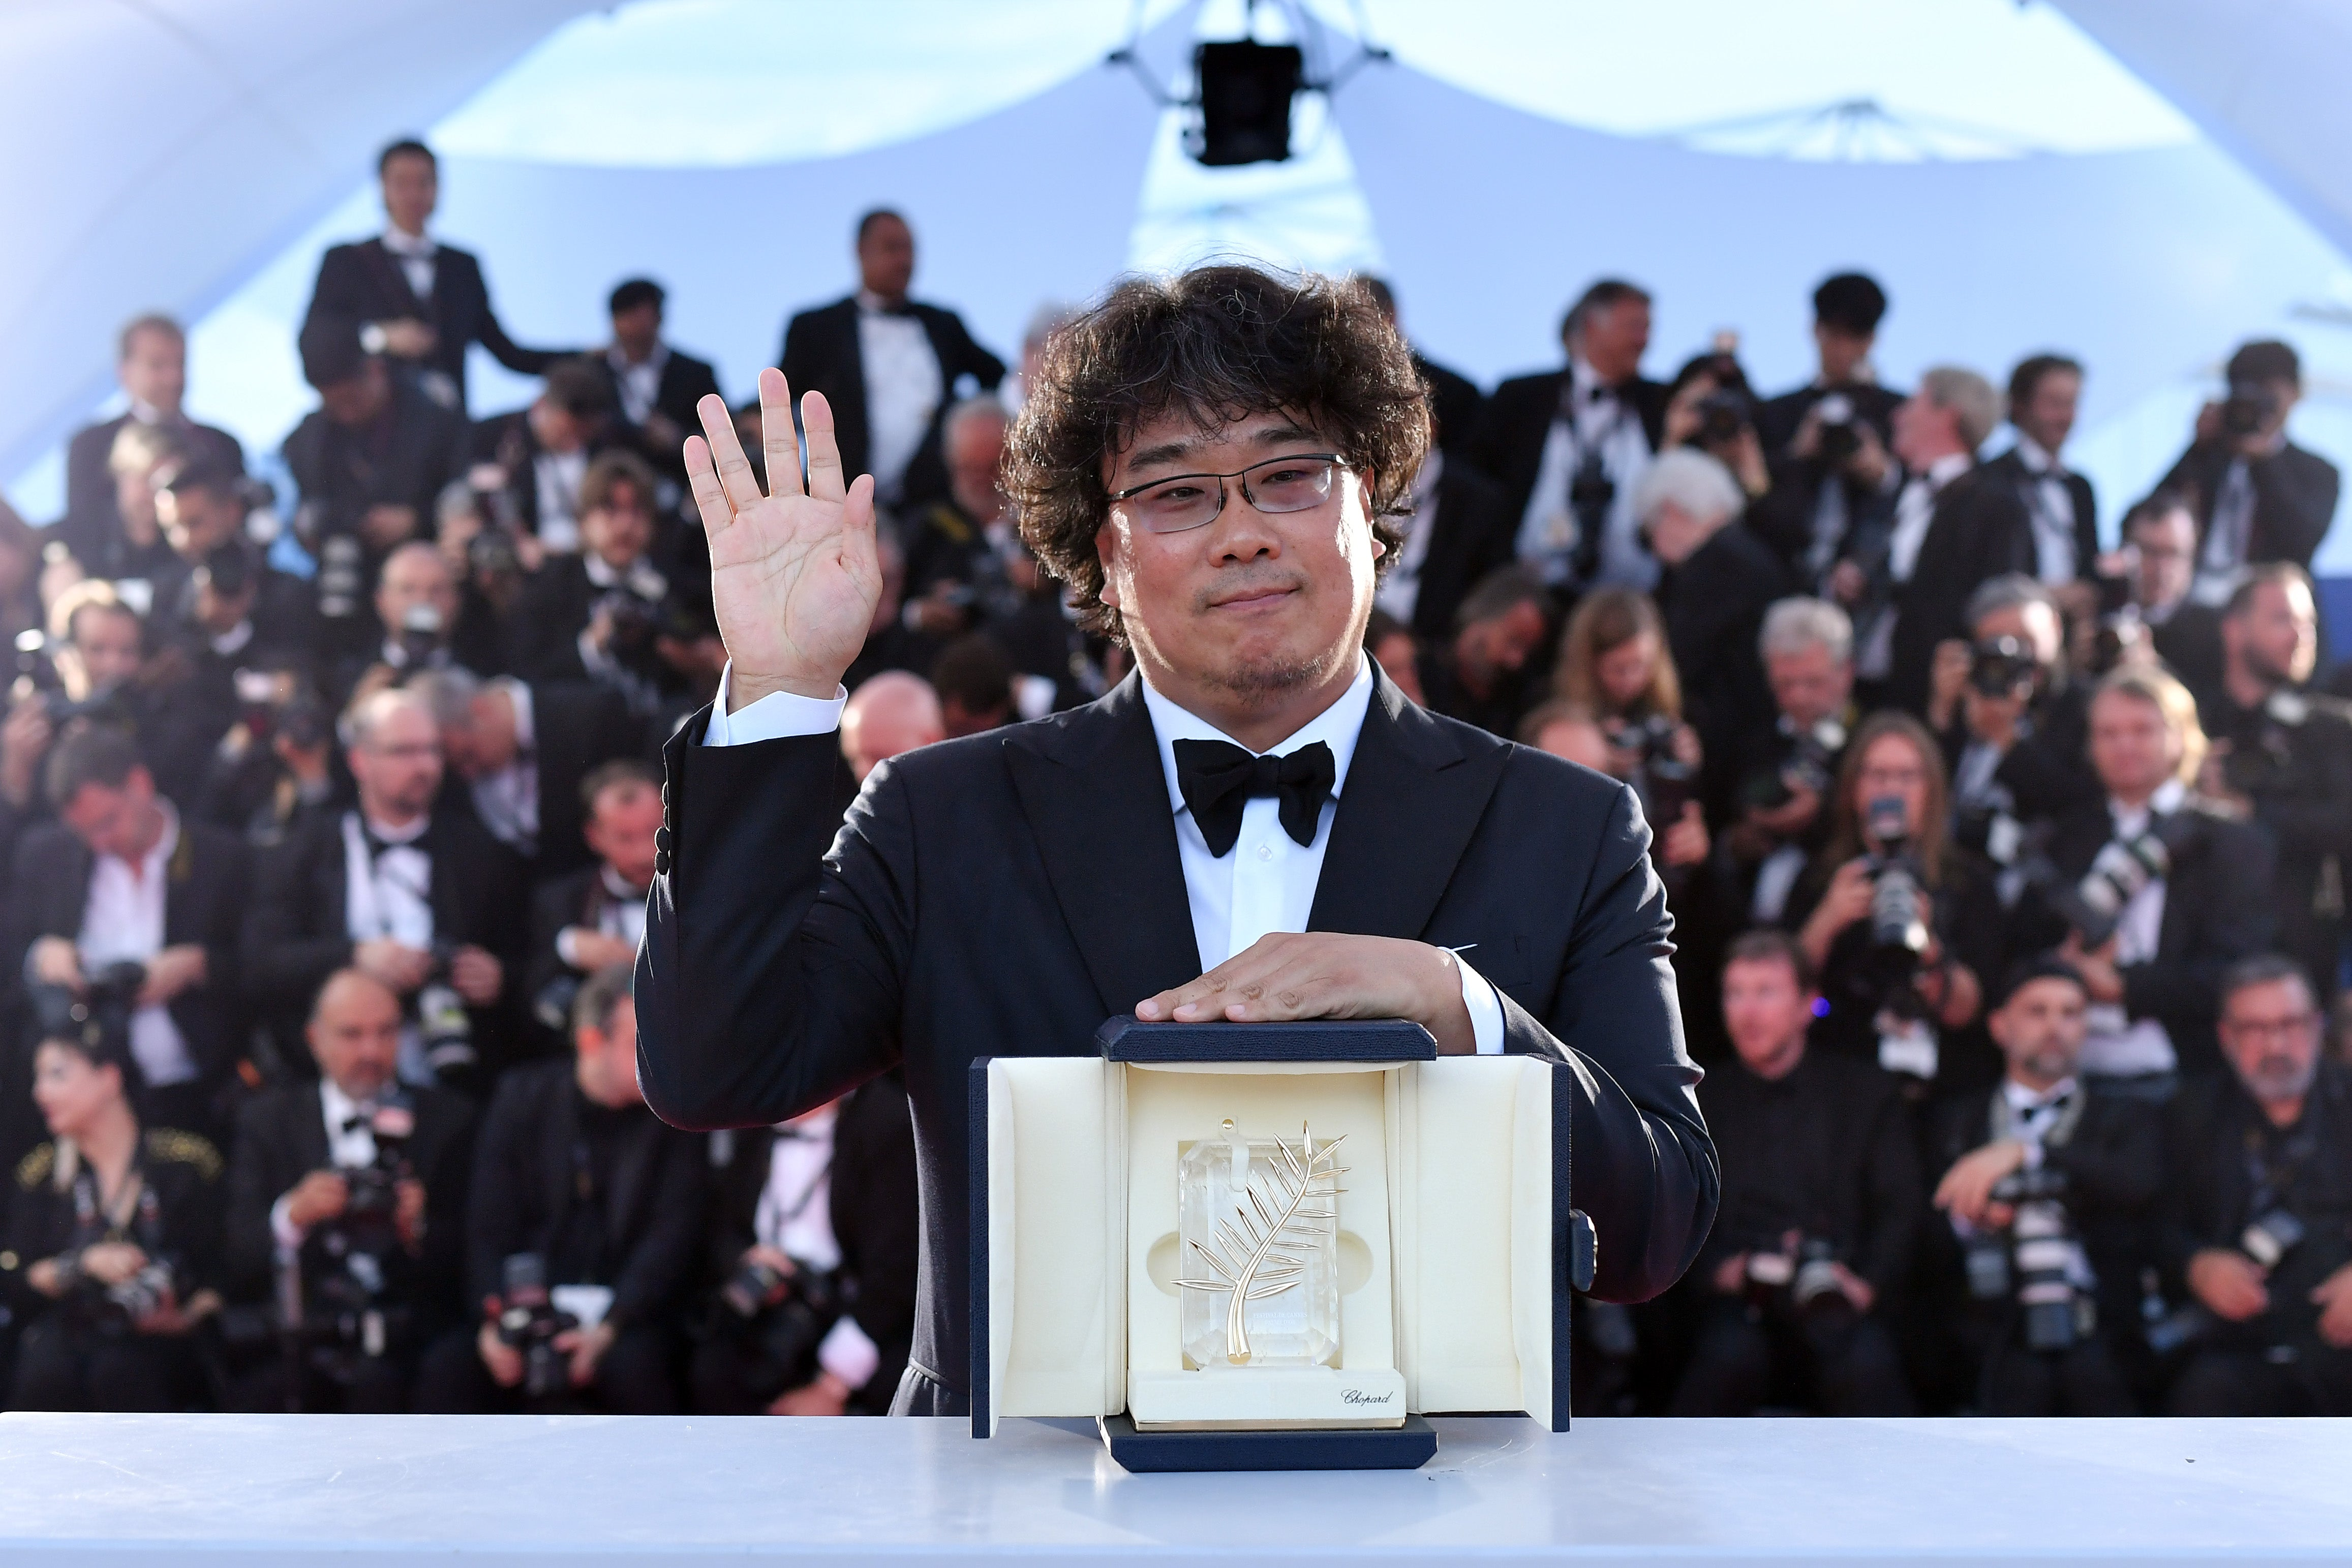 Director Joon-ho Bong, winner of the 72nd Cannes